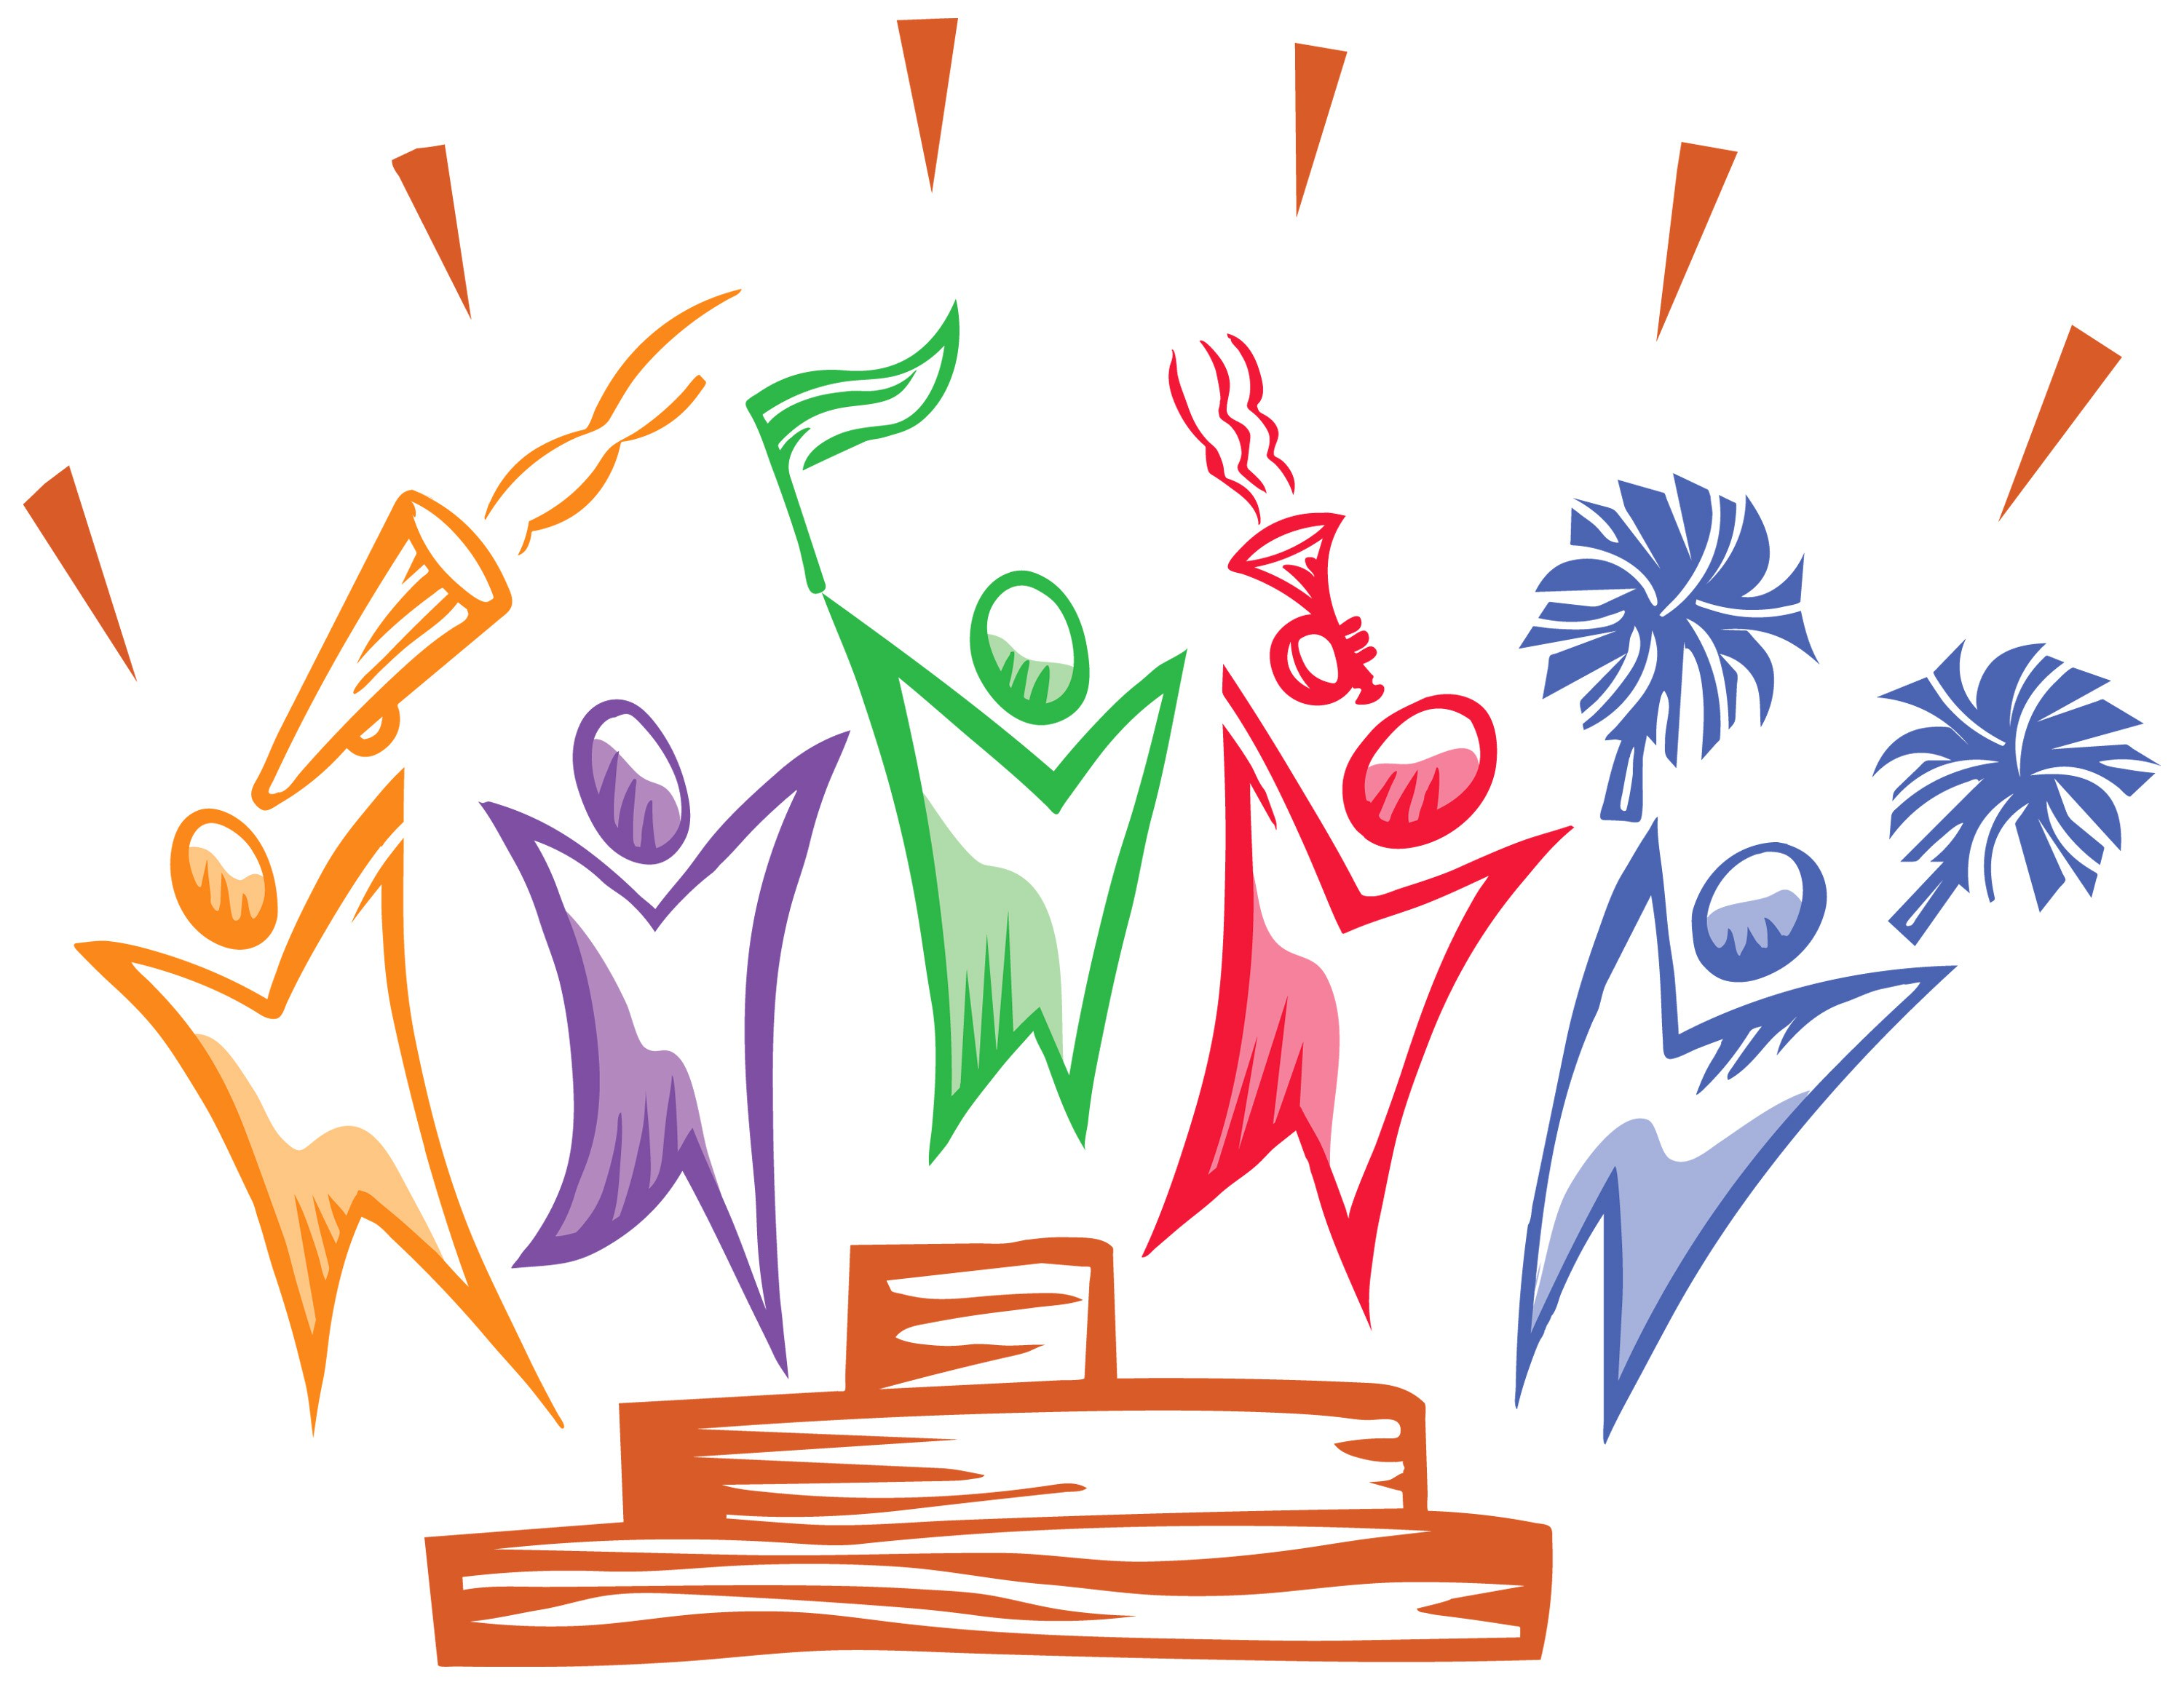 Celebrate clipart artwork. Free celebration cliparts download